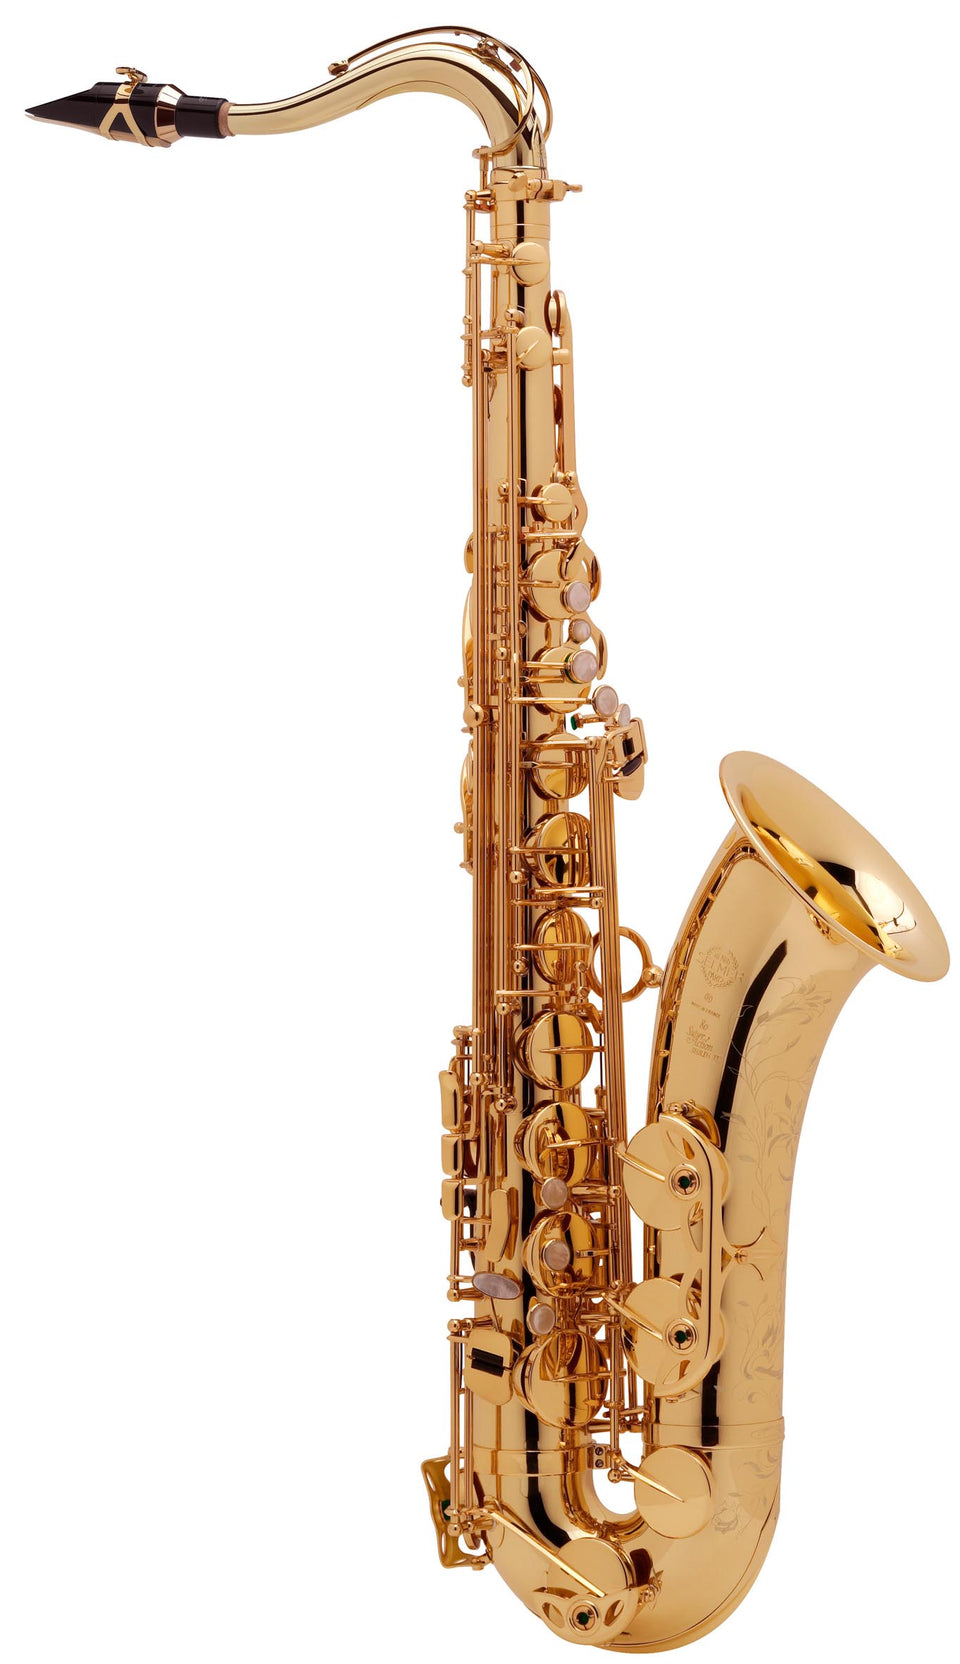 Selmer Super Action 80 Series II Jubille Edition Tenor Saxophone